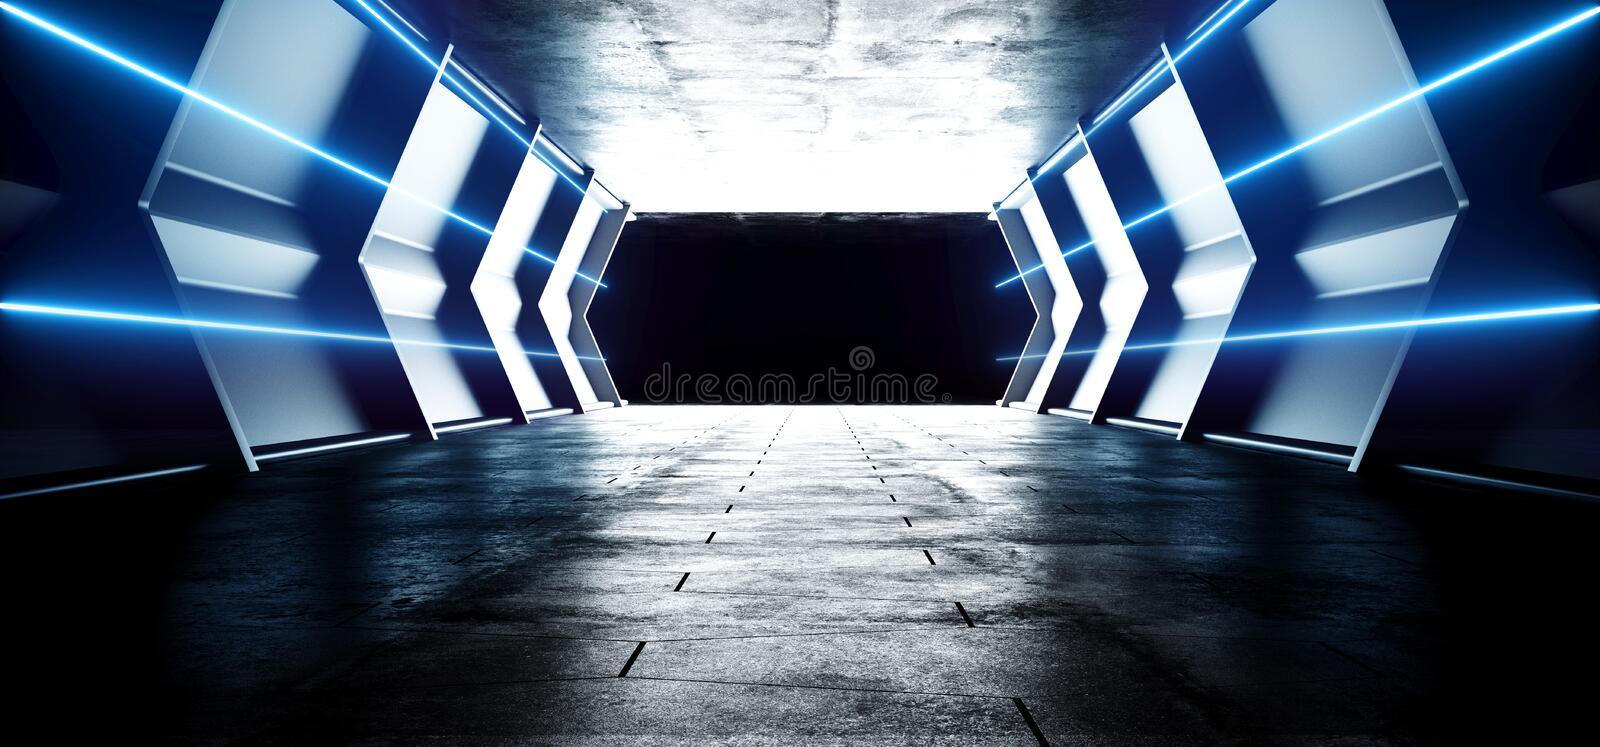 Futuristic Sci FI Alien Spaceship Neon Laser Led Blue Glowing Tunnel Metal Reflection Grunge Concrete Floor Wet Gate Virtual vector illustration